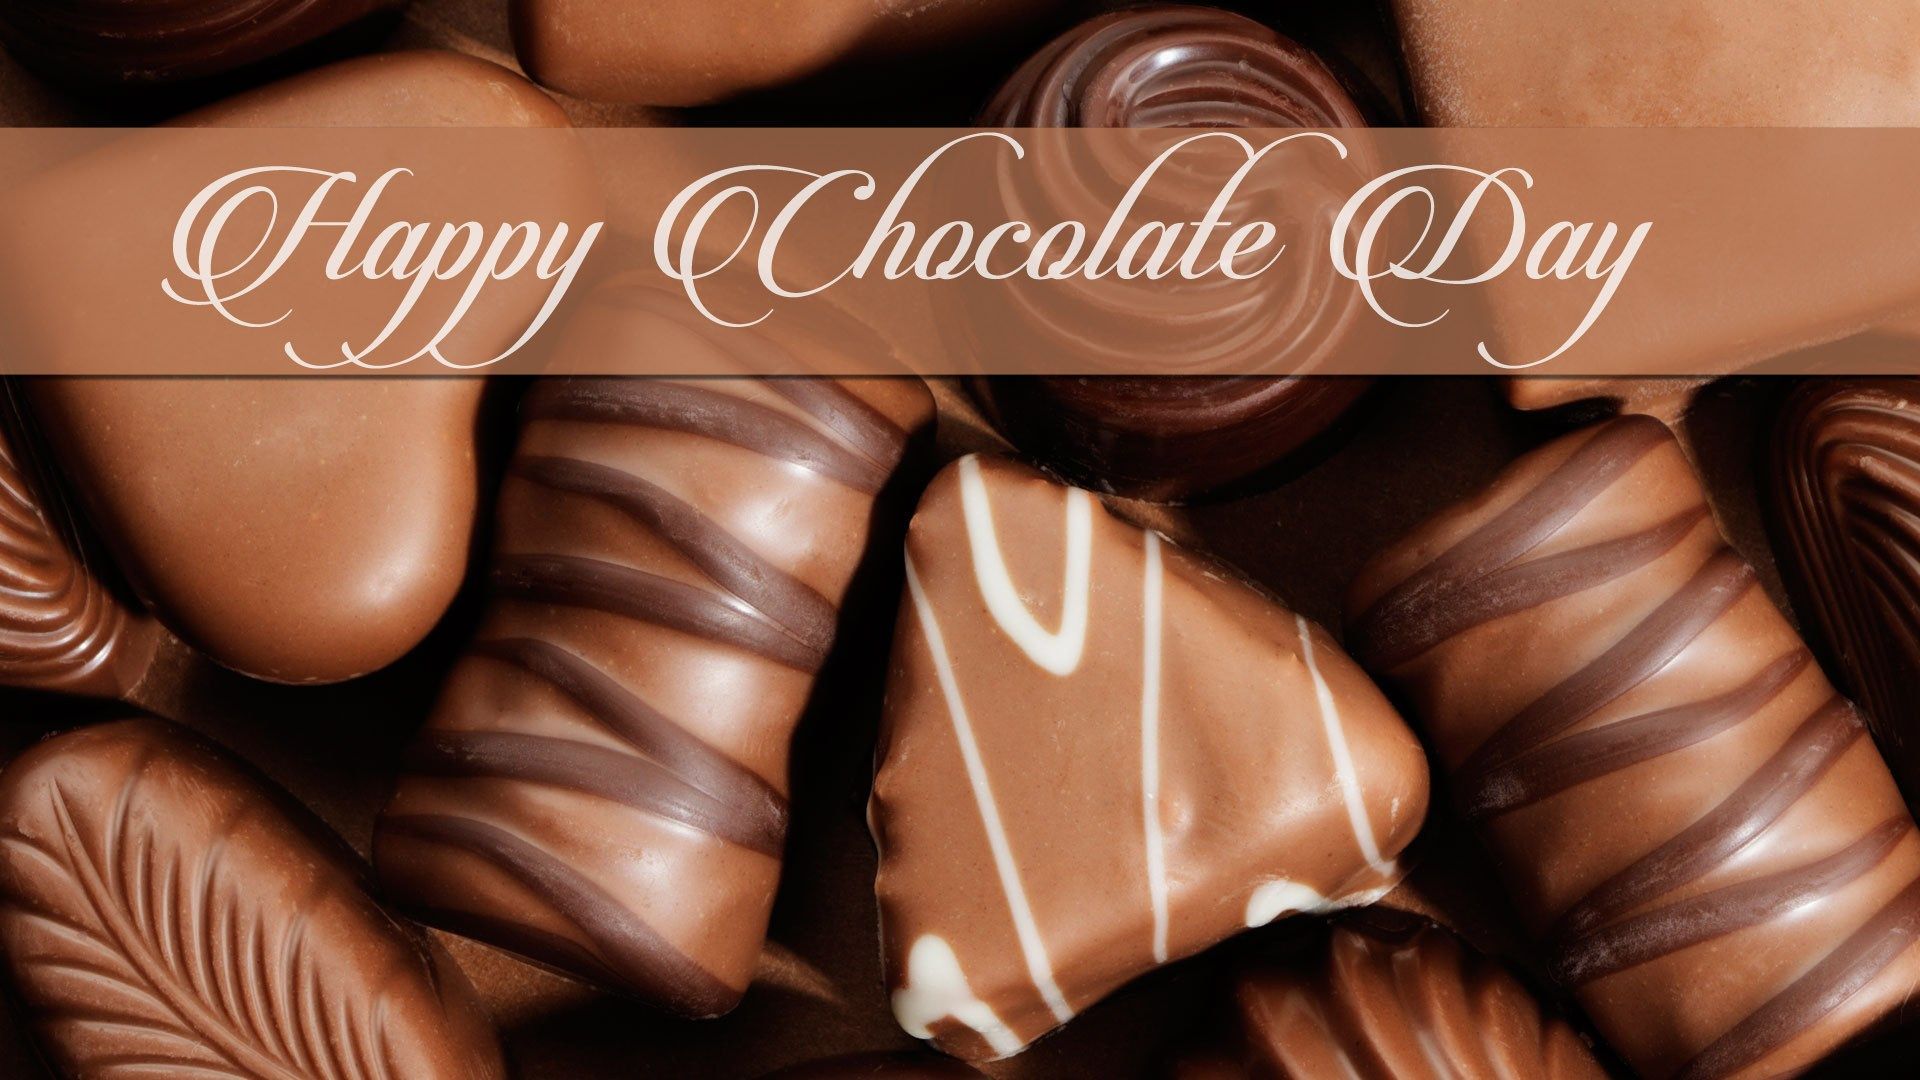 Chocolate Day Image for Whatsapp DP, Profile Wallpapers – Free